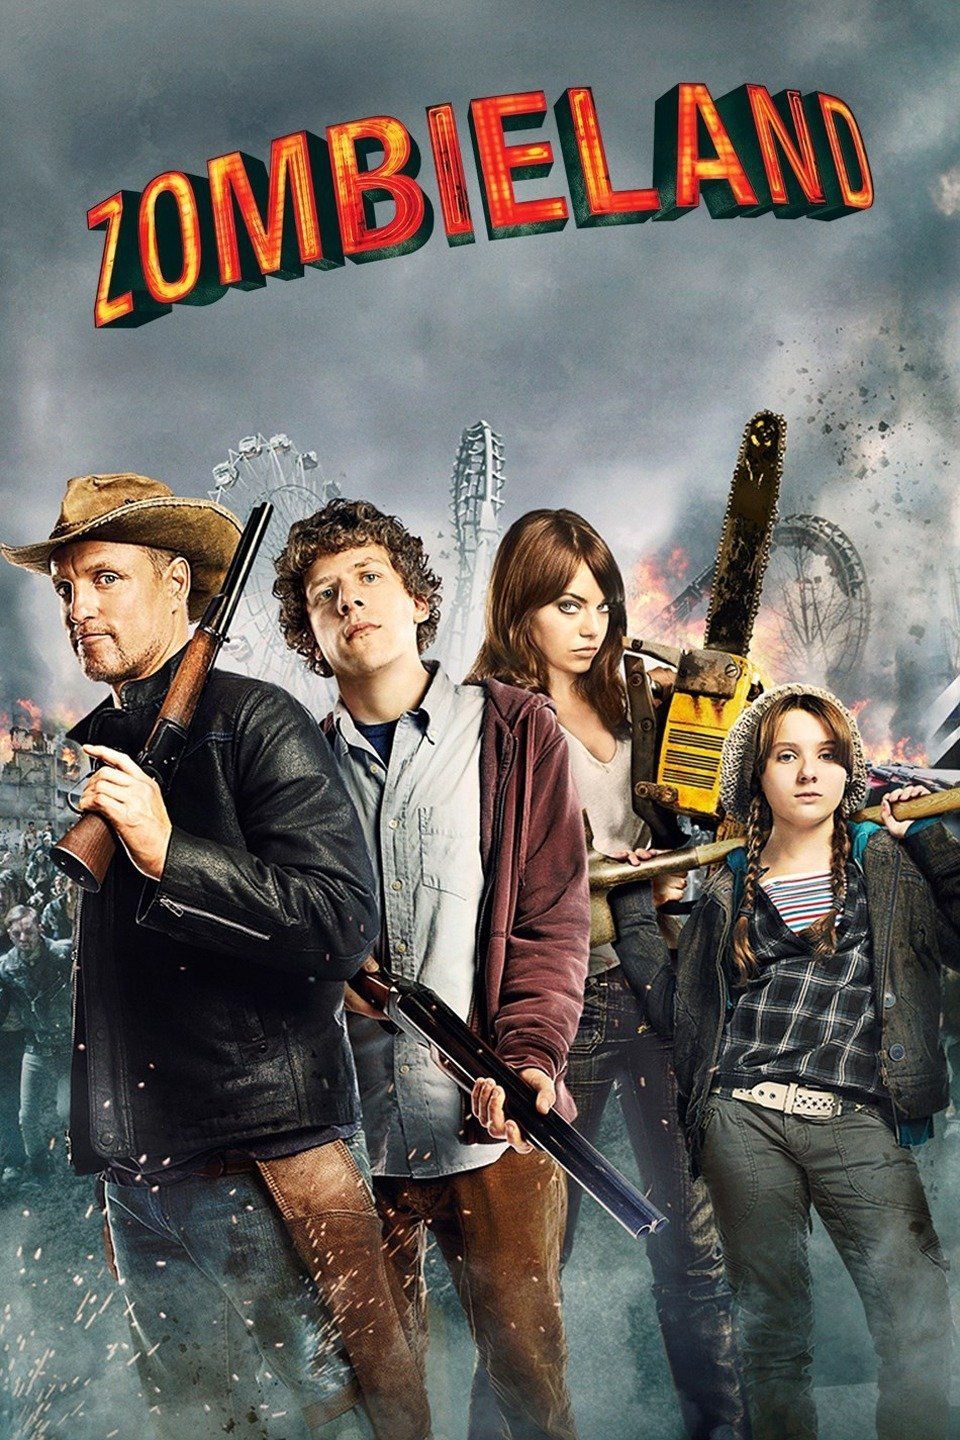 Movie poster for Zombieland with cast posing and armed in front of a zombie horde.